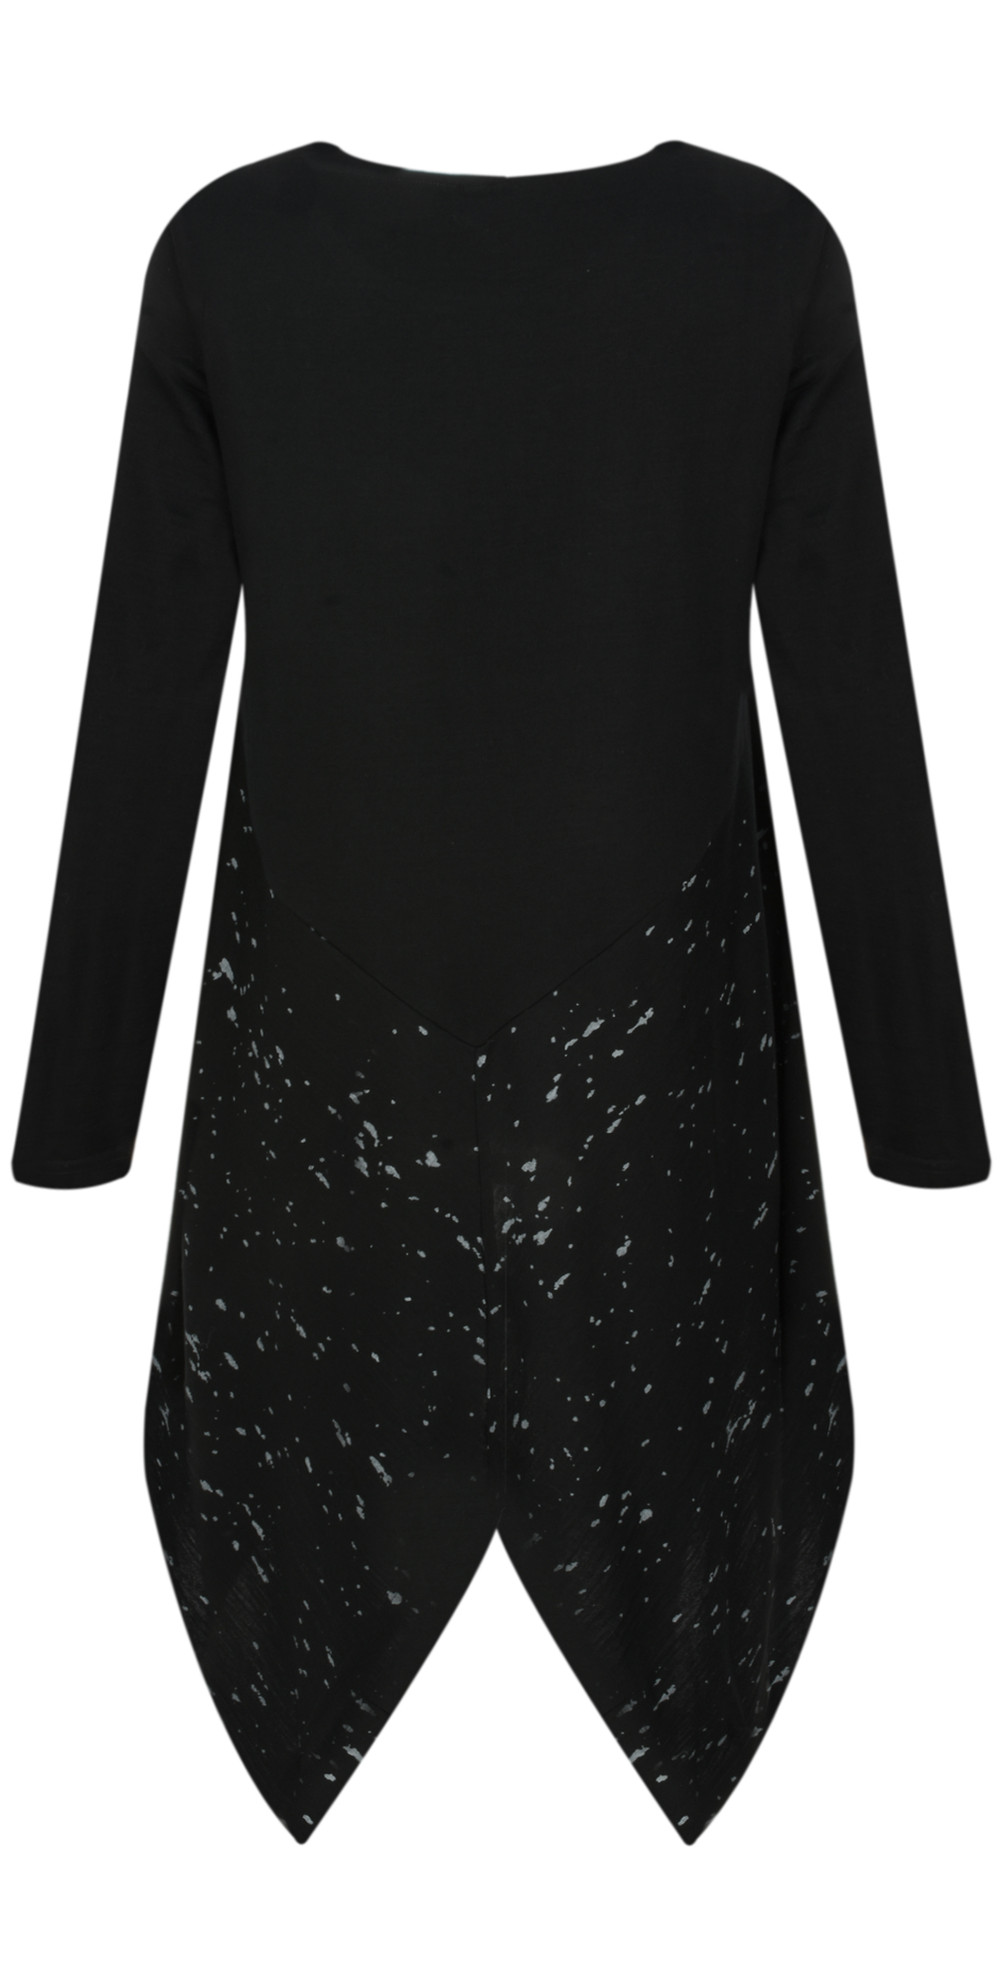 Merino Wool Splatter Top main image